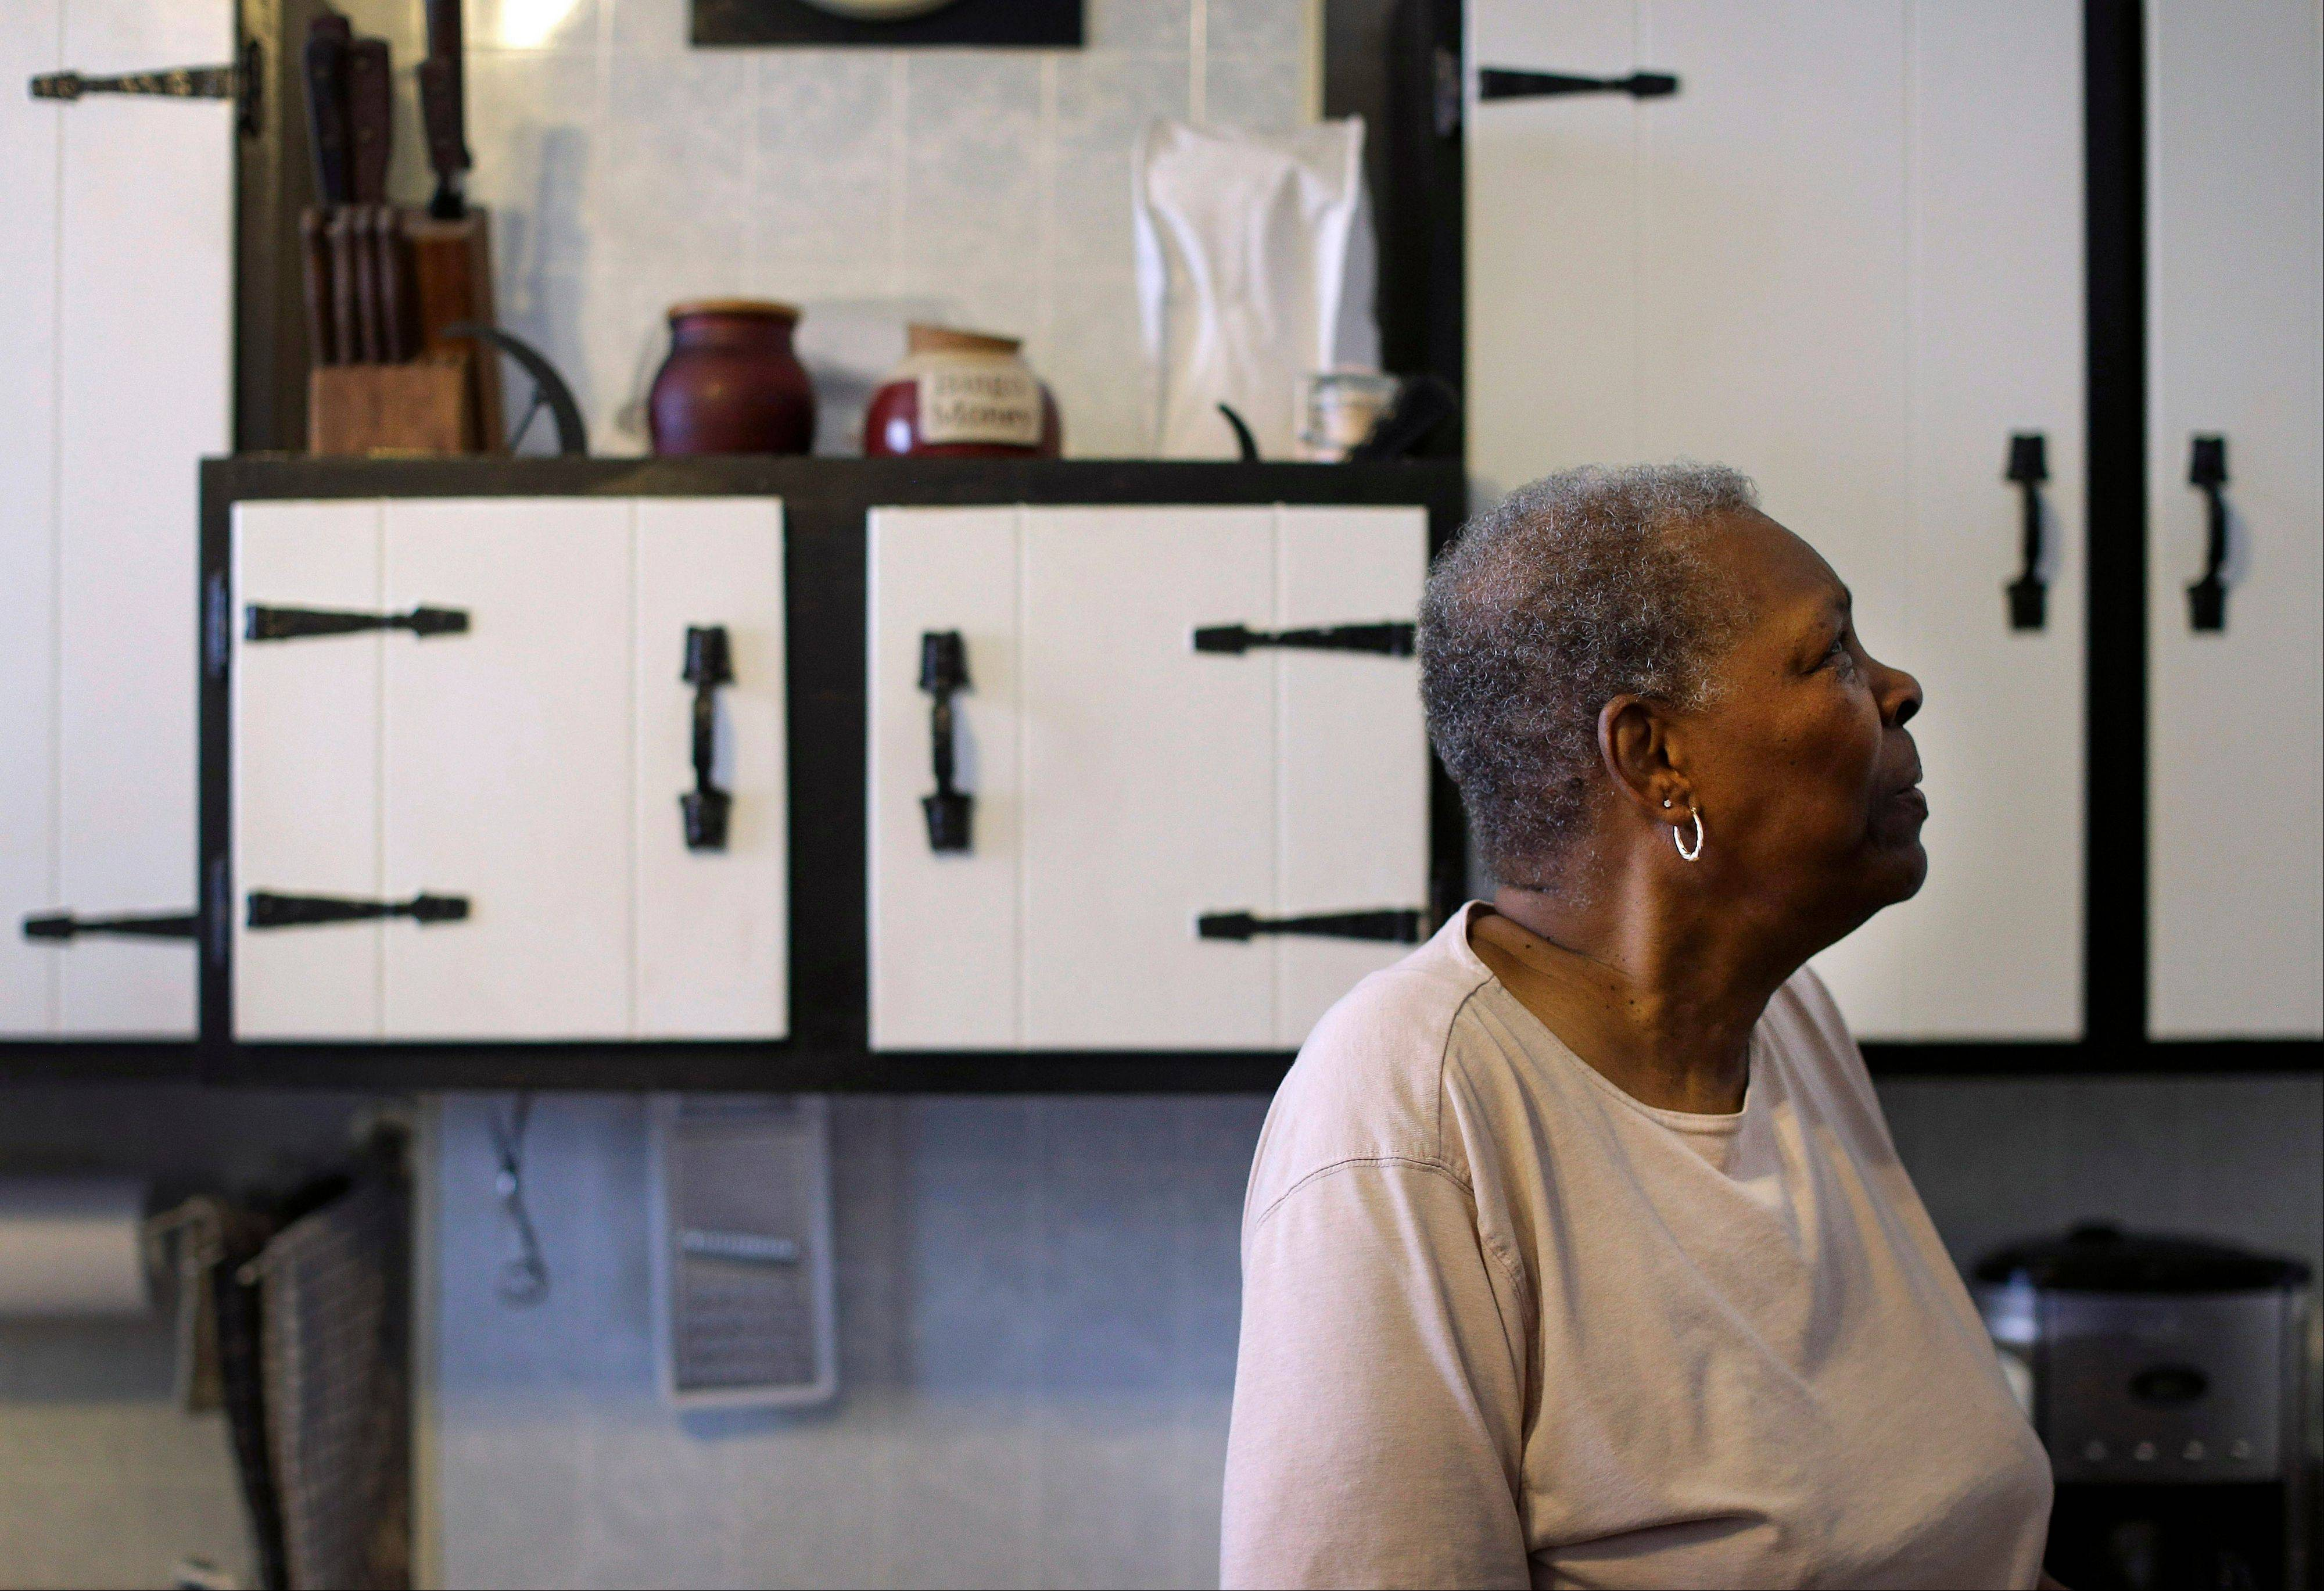 Hattie Watties in front of cabinets that were lowered in her kitchen in Baltimore, allowing her easier access to items inside that she once struggled to reach on her own. Physical limitations become more difficult with doorways too narrow for walkers, toilets that are lower than chairs, and kitchen counters too tall to sit while cooking.